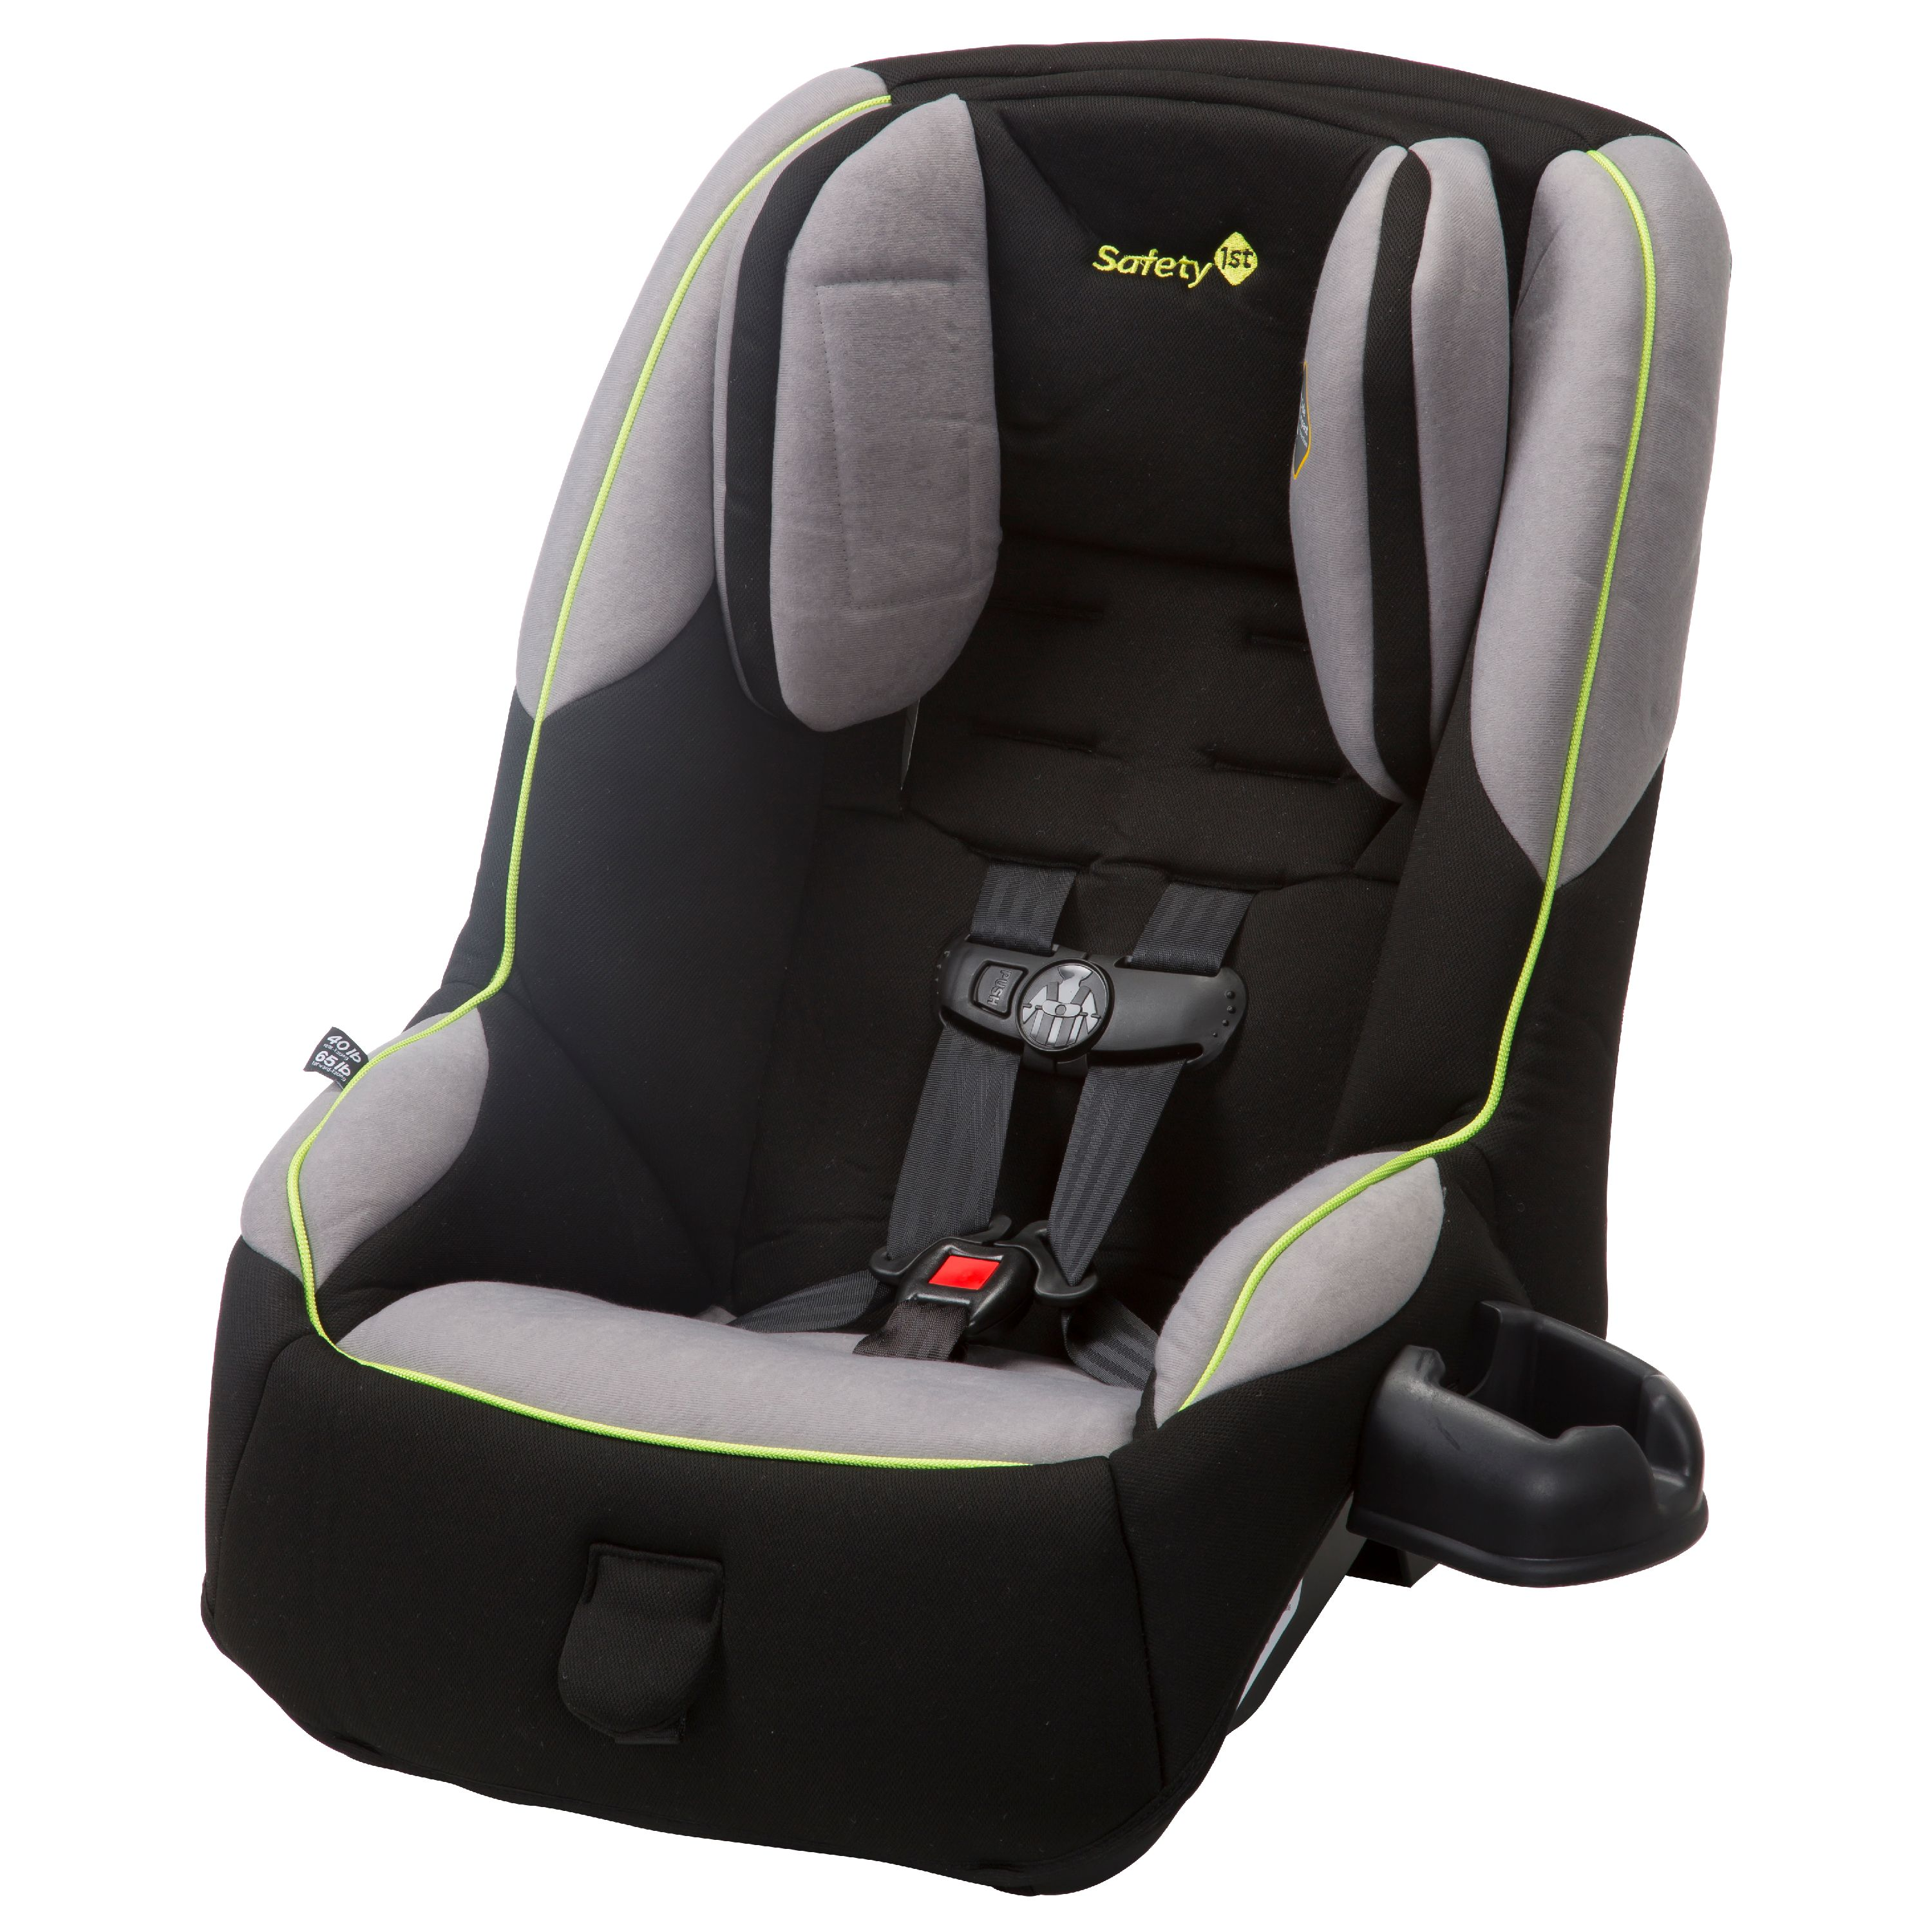 Safety 1ˢᵗ Guide 65 Sport Convertible Car Seat, Guildsman